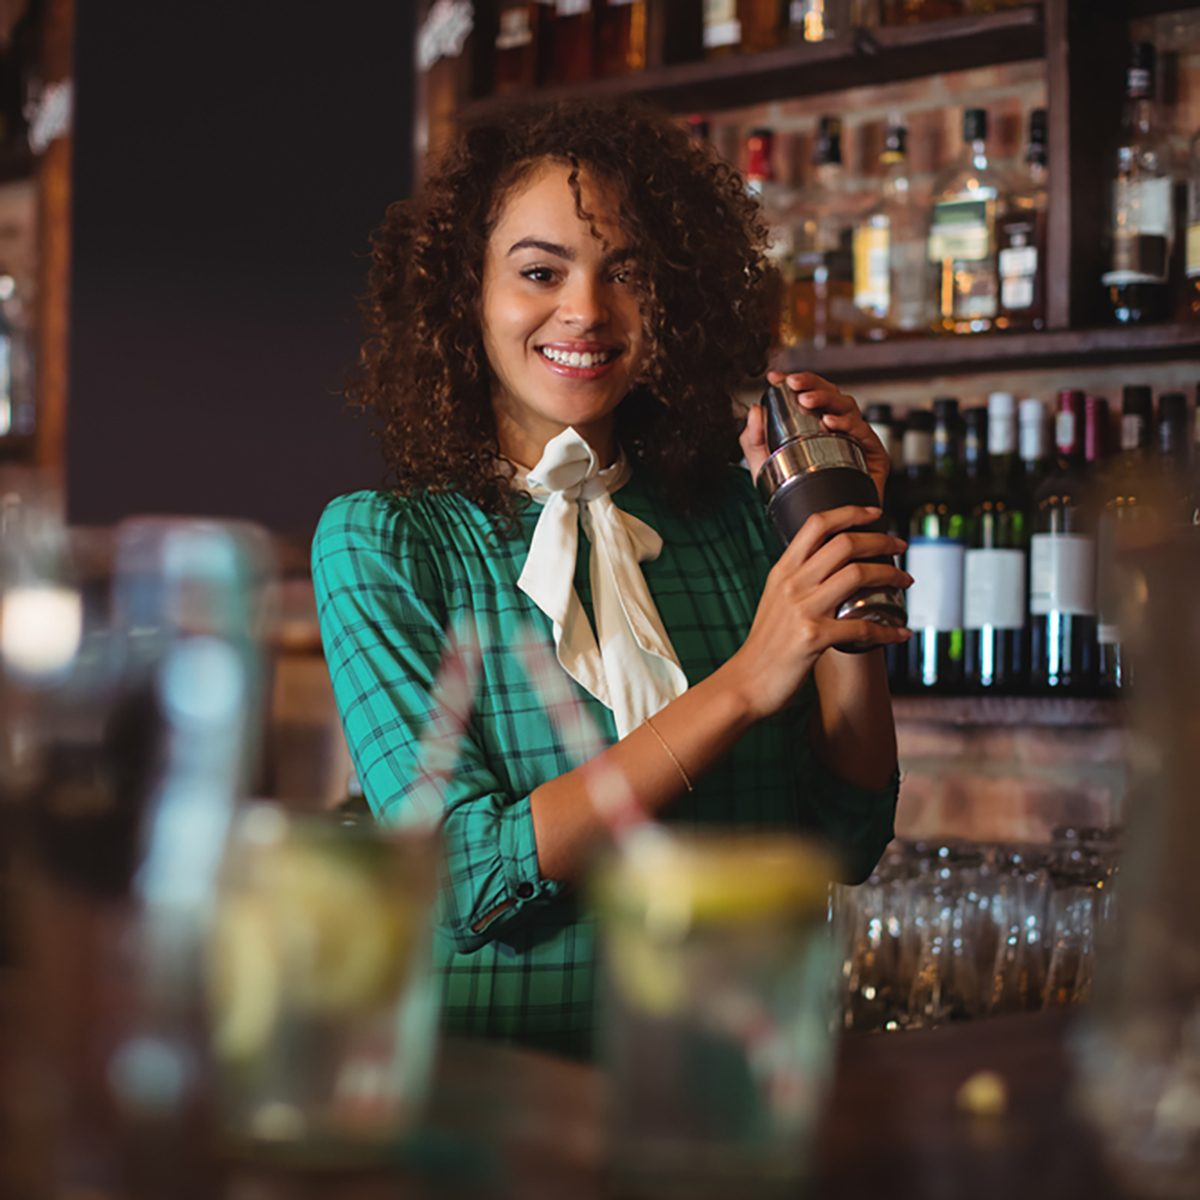 Portrait of female bartender mixing a cocktail drink in cocktail shaker at counter